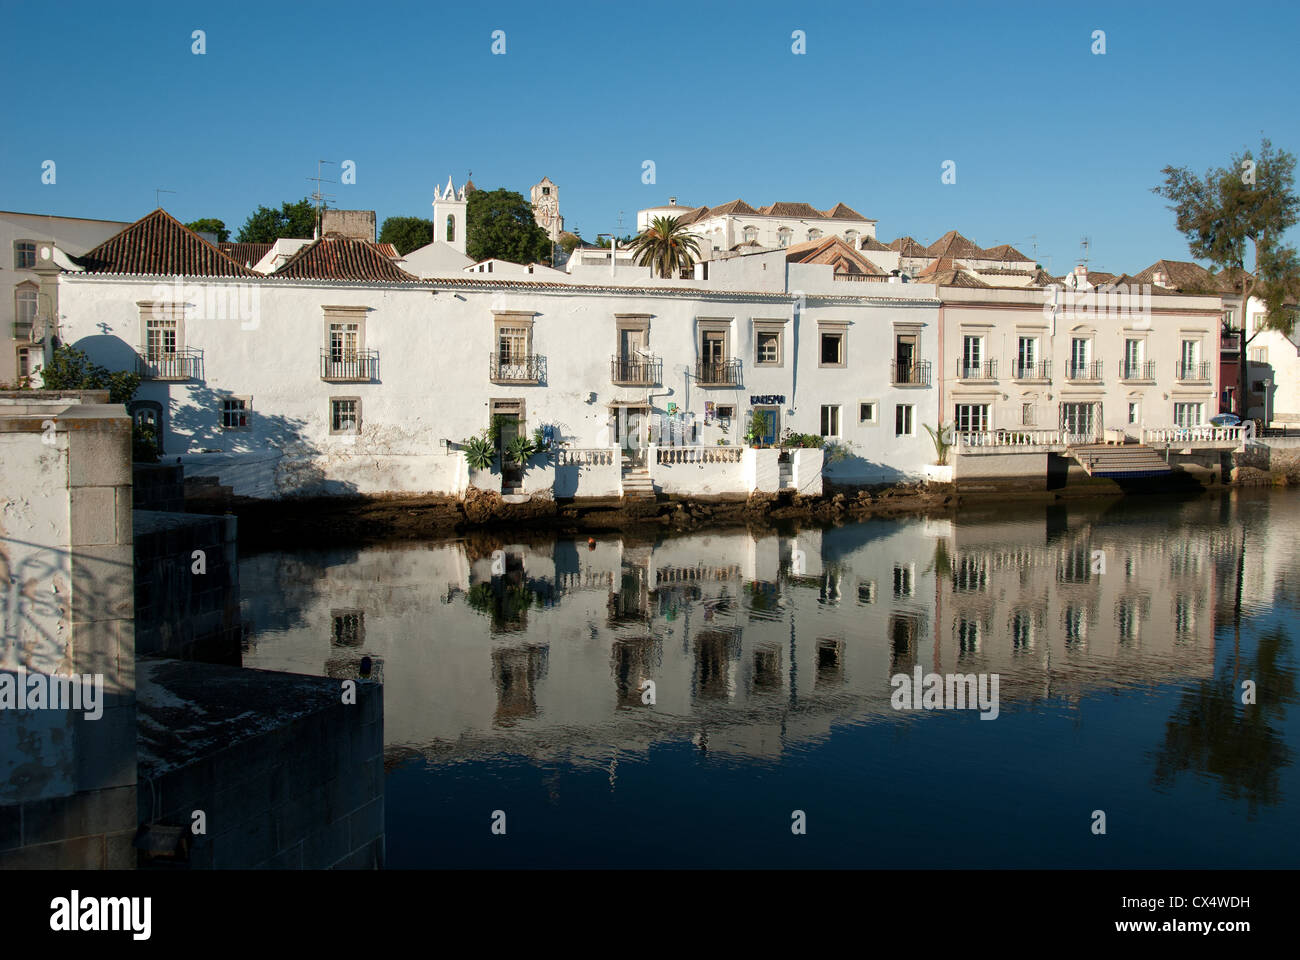 ALGARVE, PORTUGAL. The historic town of Tavira on the banks of the Rio Gilao. 2012. - Stock Image